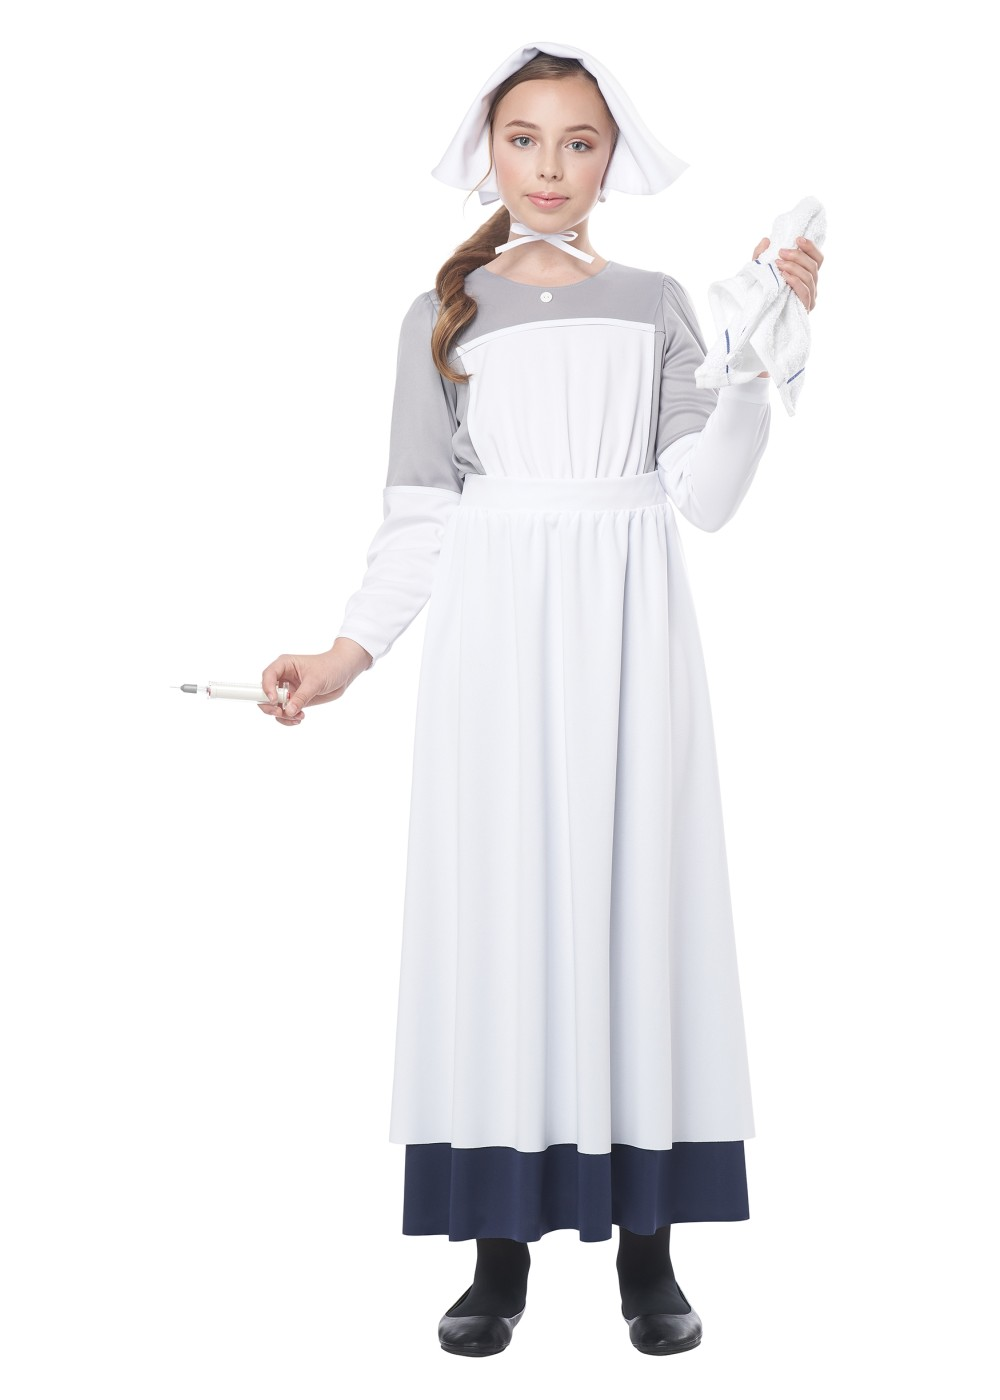 Kids Civil War Nurse Girl Costume